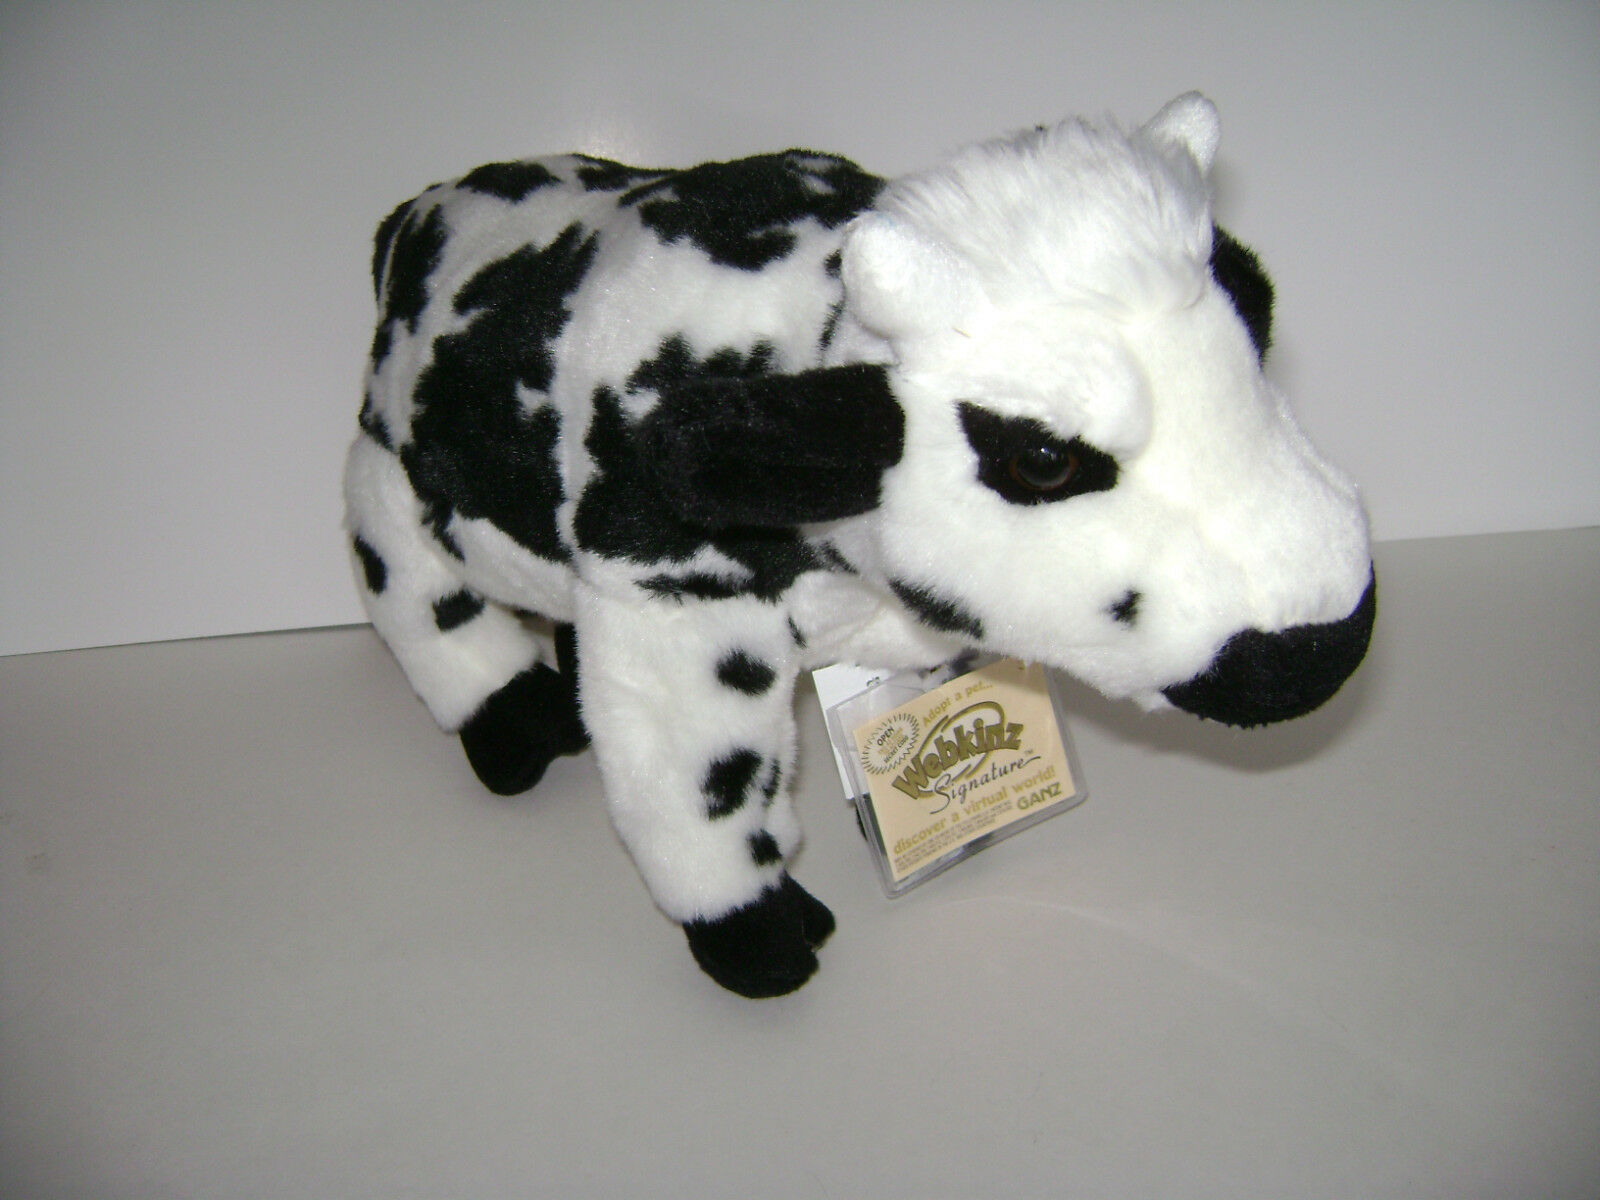 Webkinz Signature Normande Cow WKS1032 by GANZ  PLUSH STUFFED TOY NEW With CODE